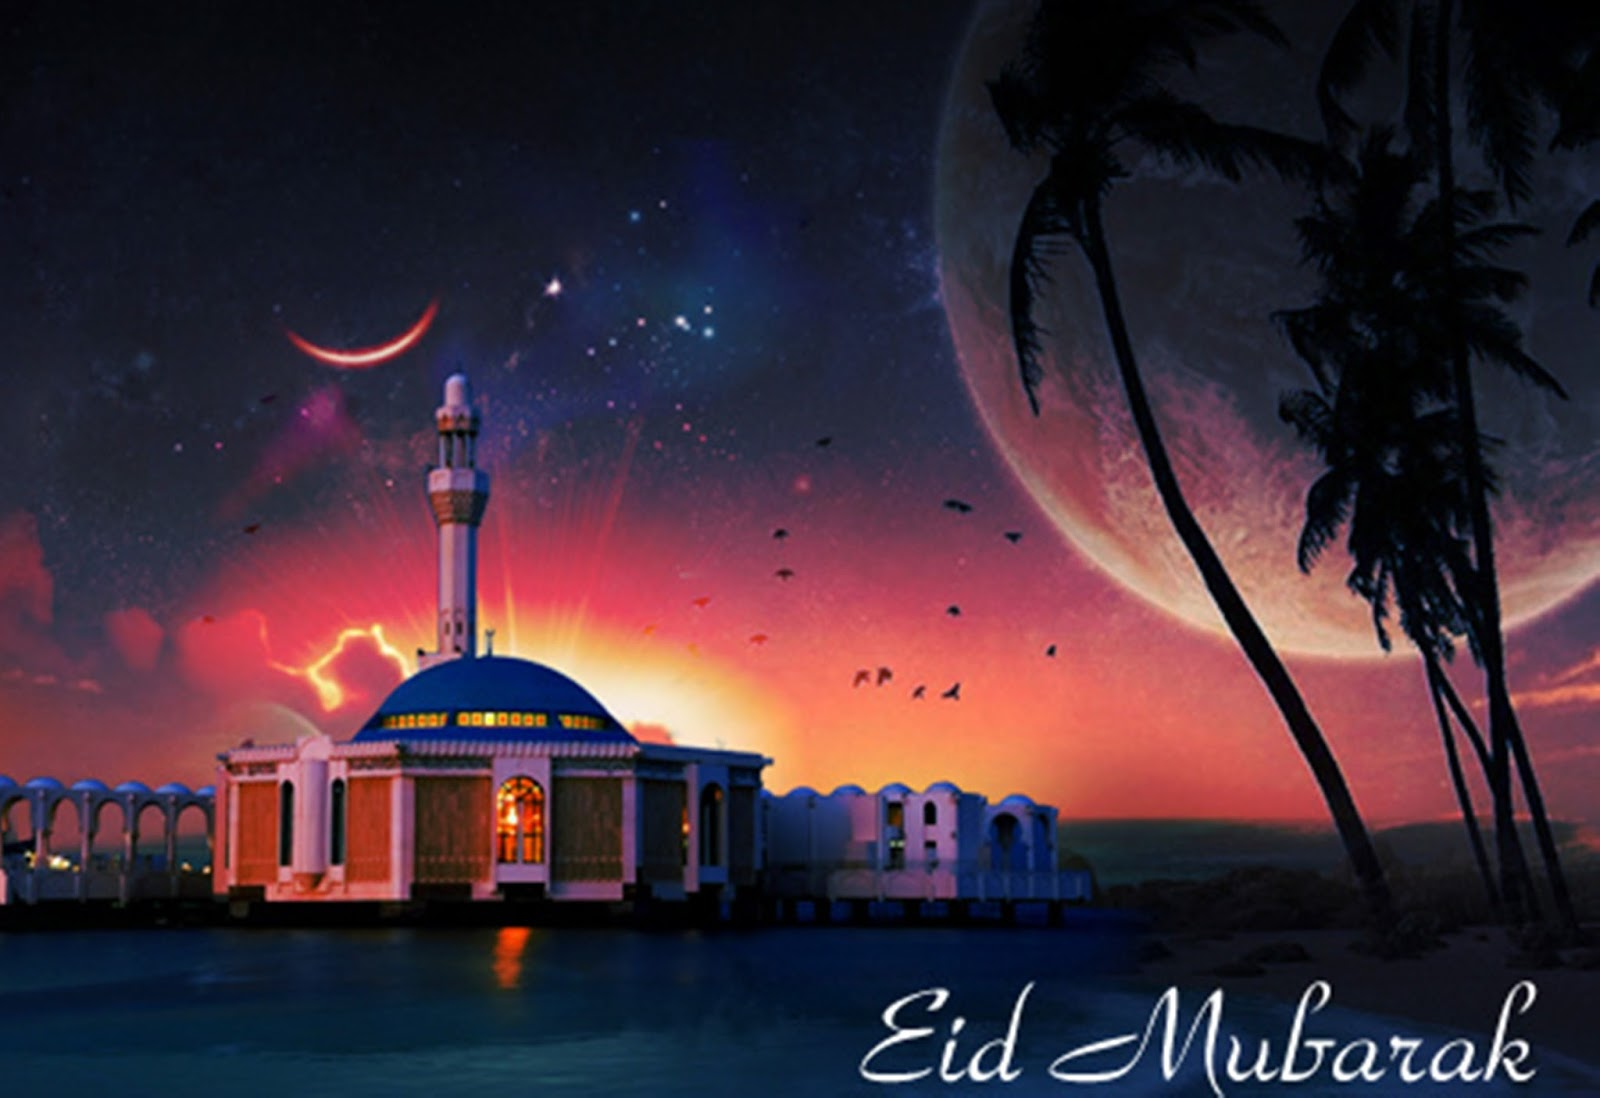 Eid Greetings Images Choice Image Greeting Card Examples